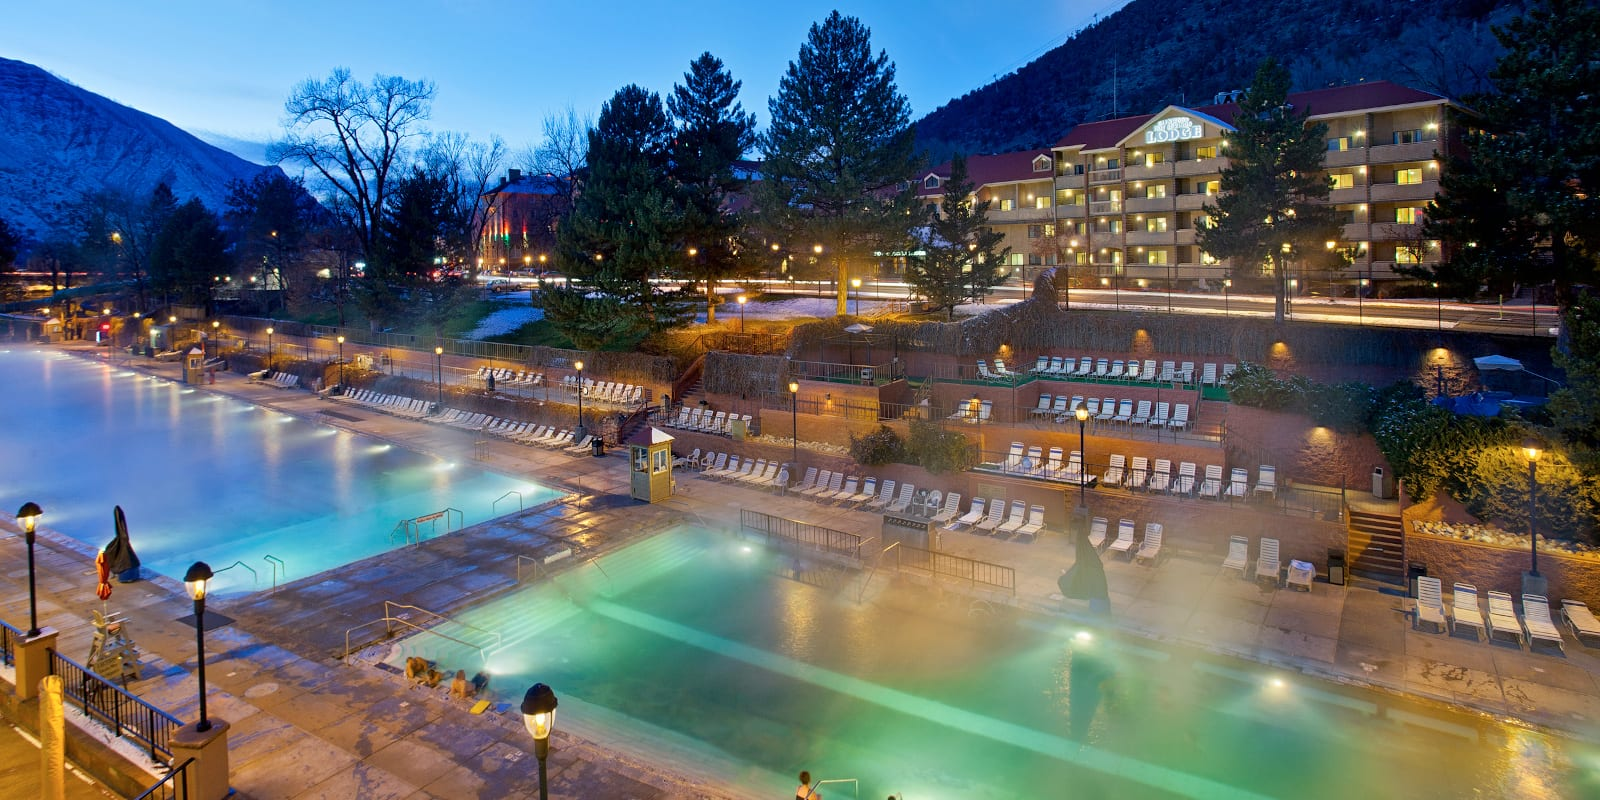 Glenwood Springs Hot Springs Pools Night Colorado